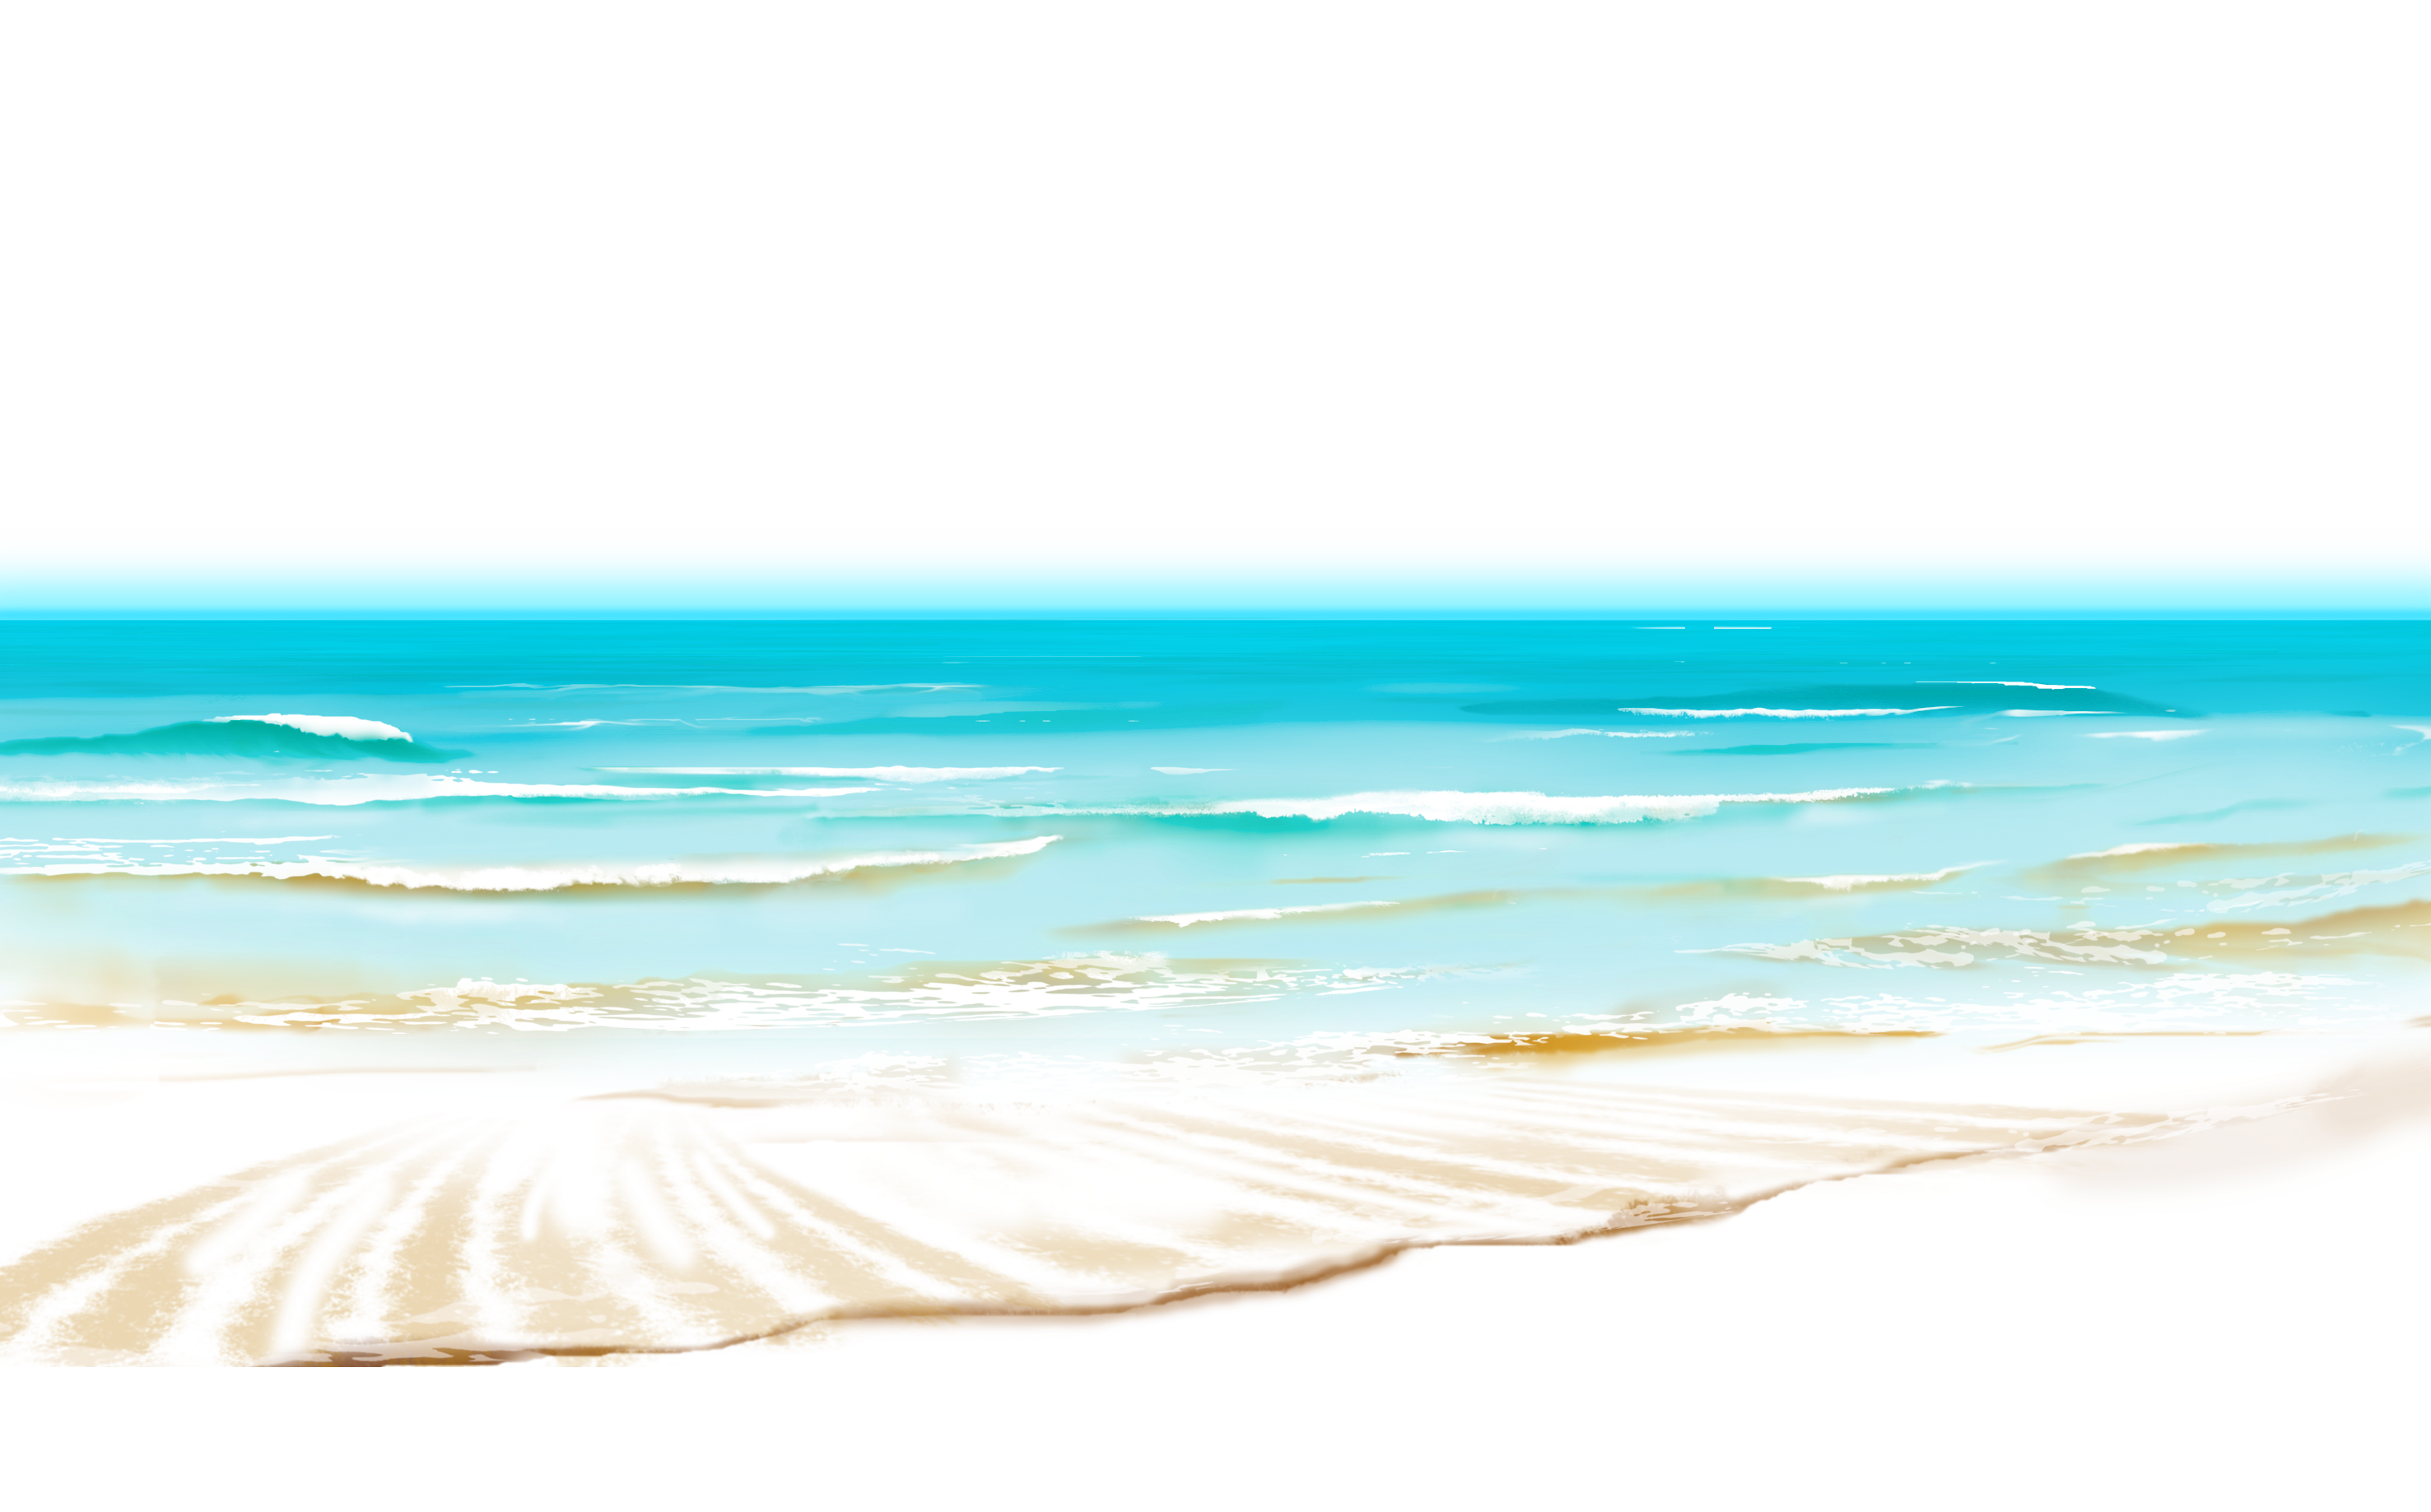 2953x1837 Sea Beach Ground Png Clipart Clipart Beach